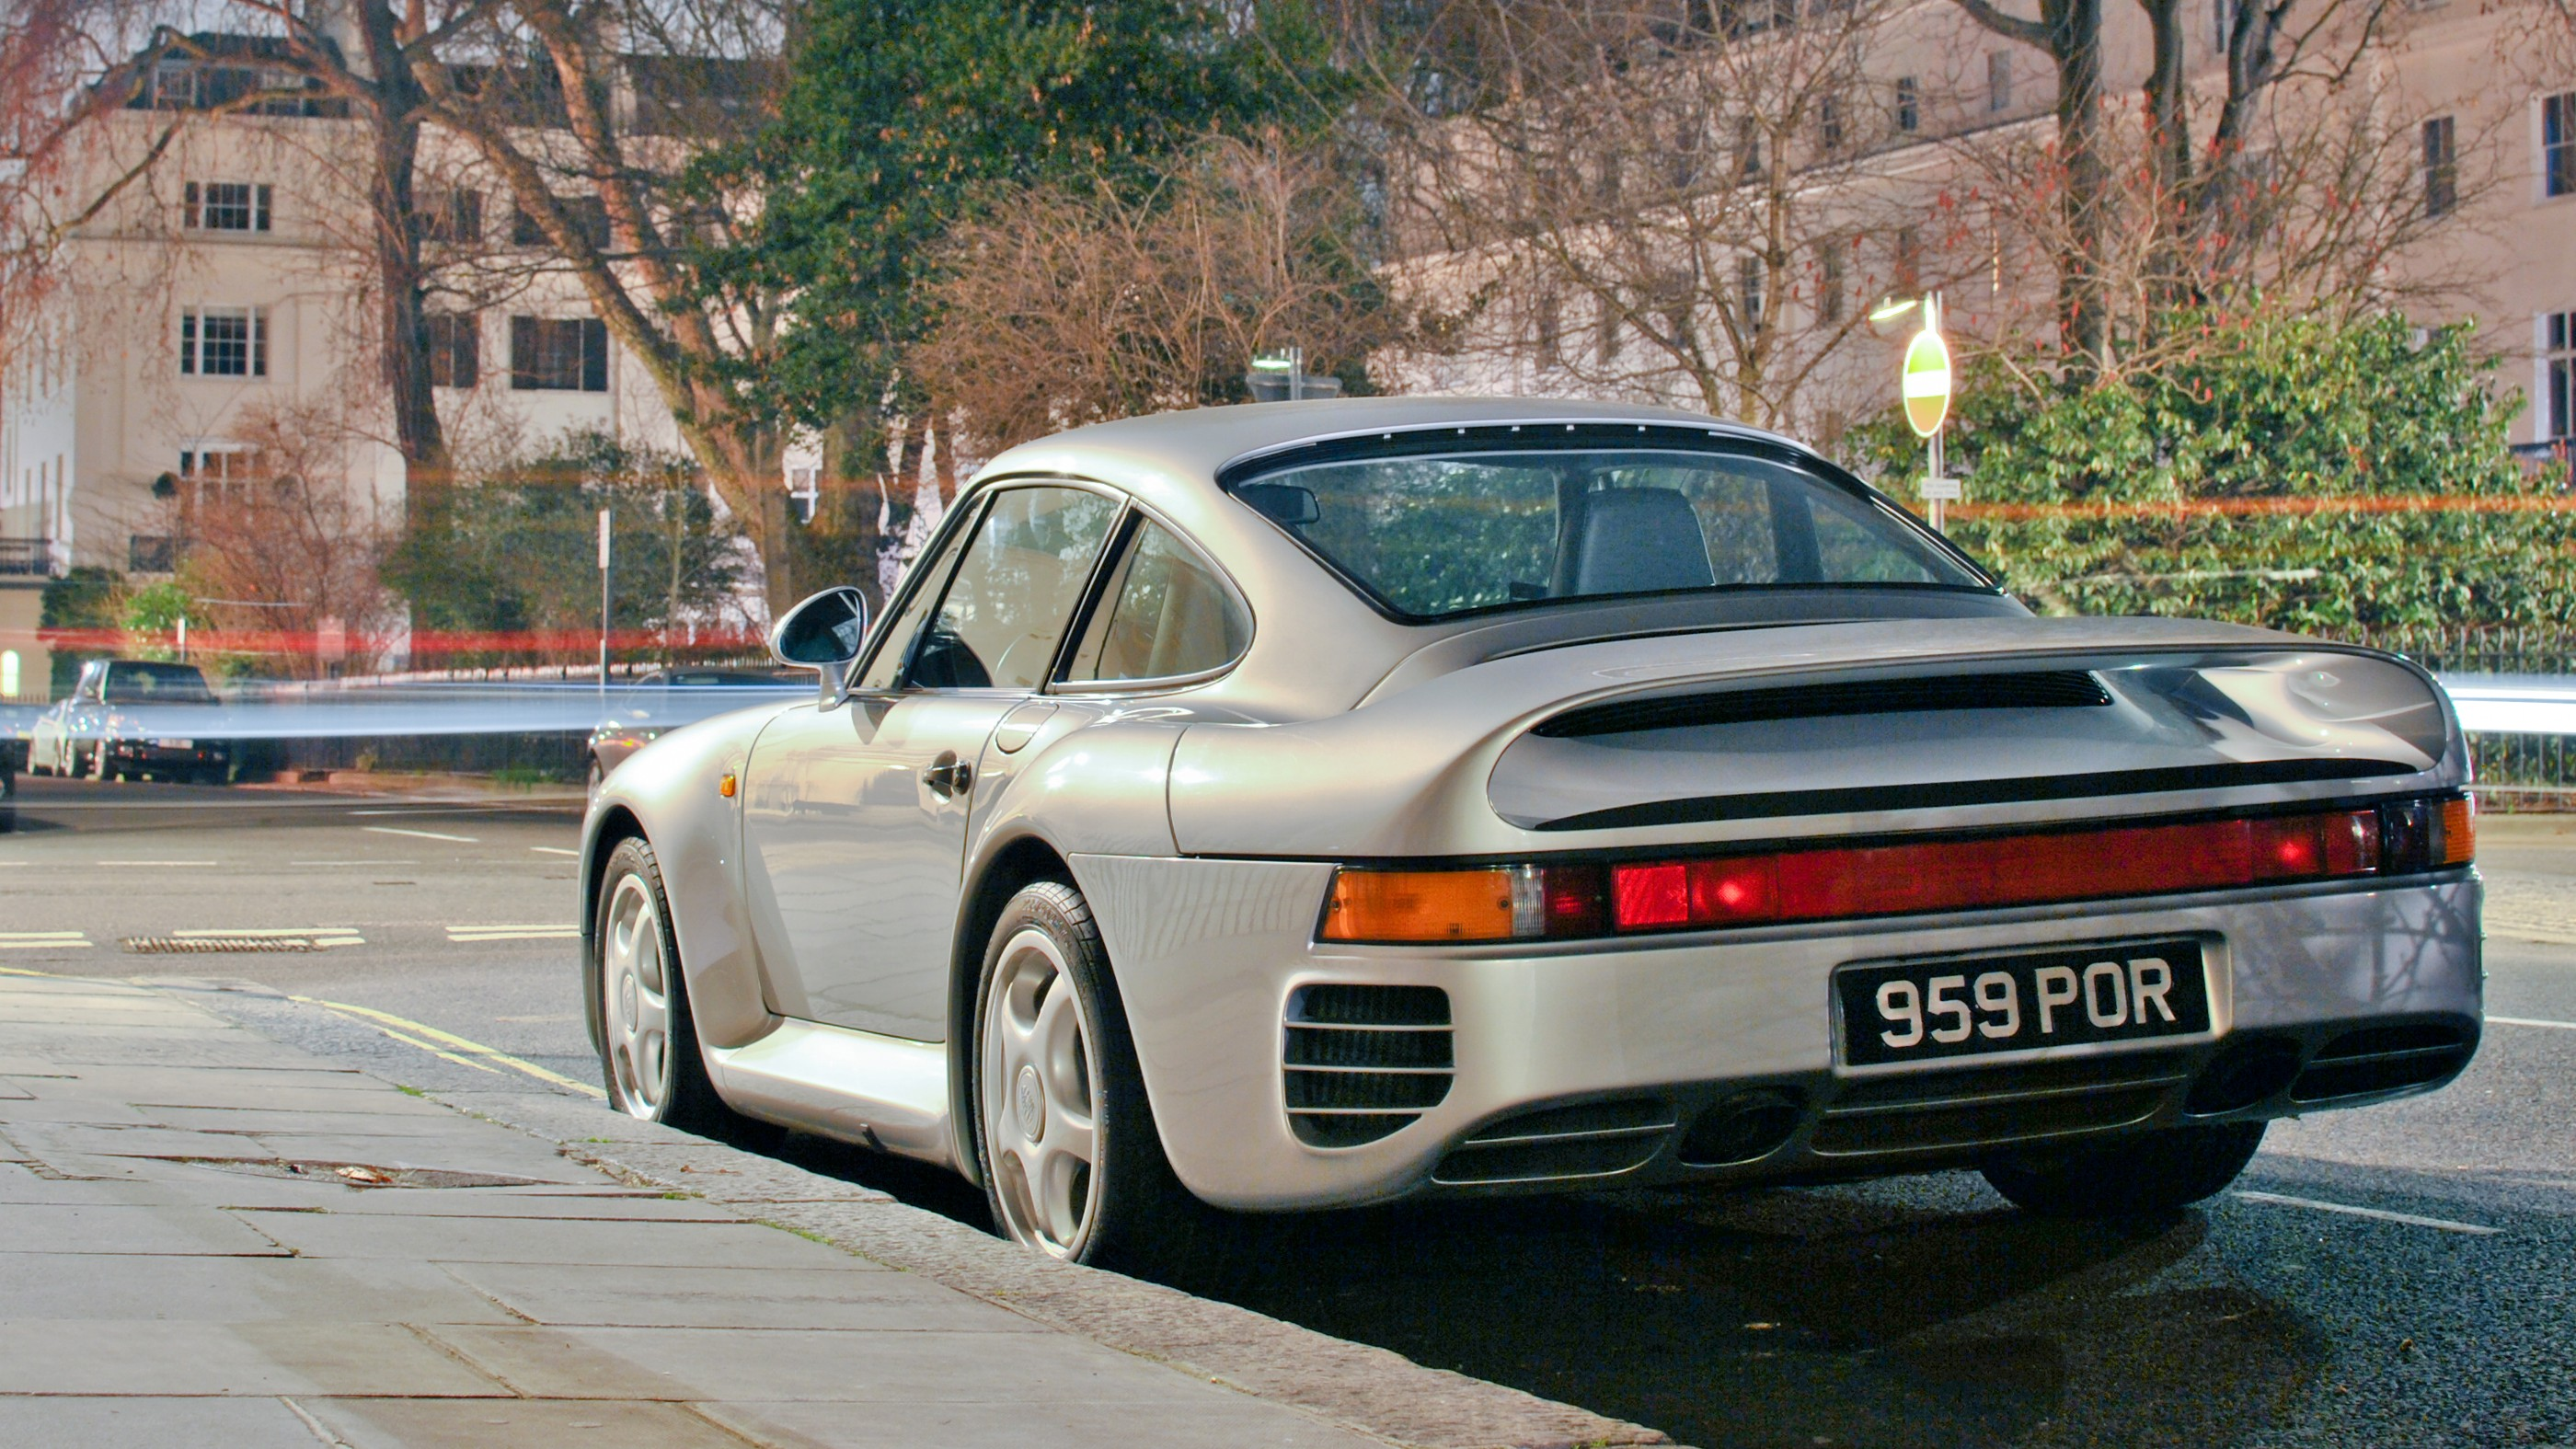 Best Uber Cars >> File:Porsche 959 (series 2) in Belgravia on 2012-03-01.jpg - Wikimedia Commons